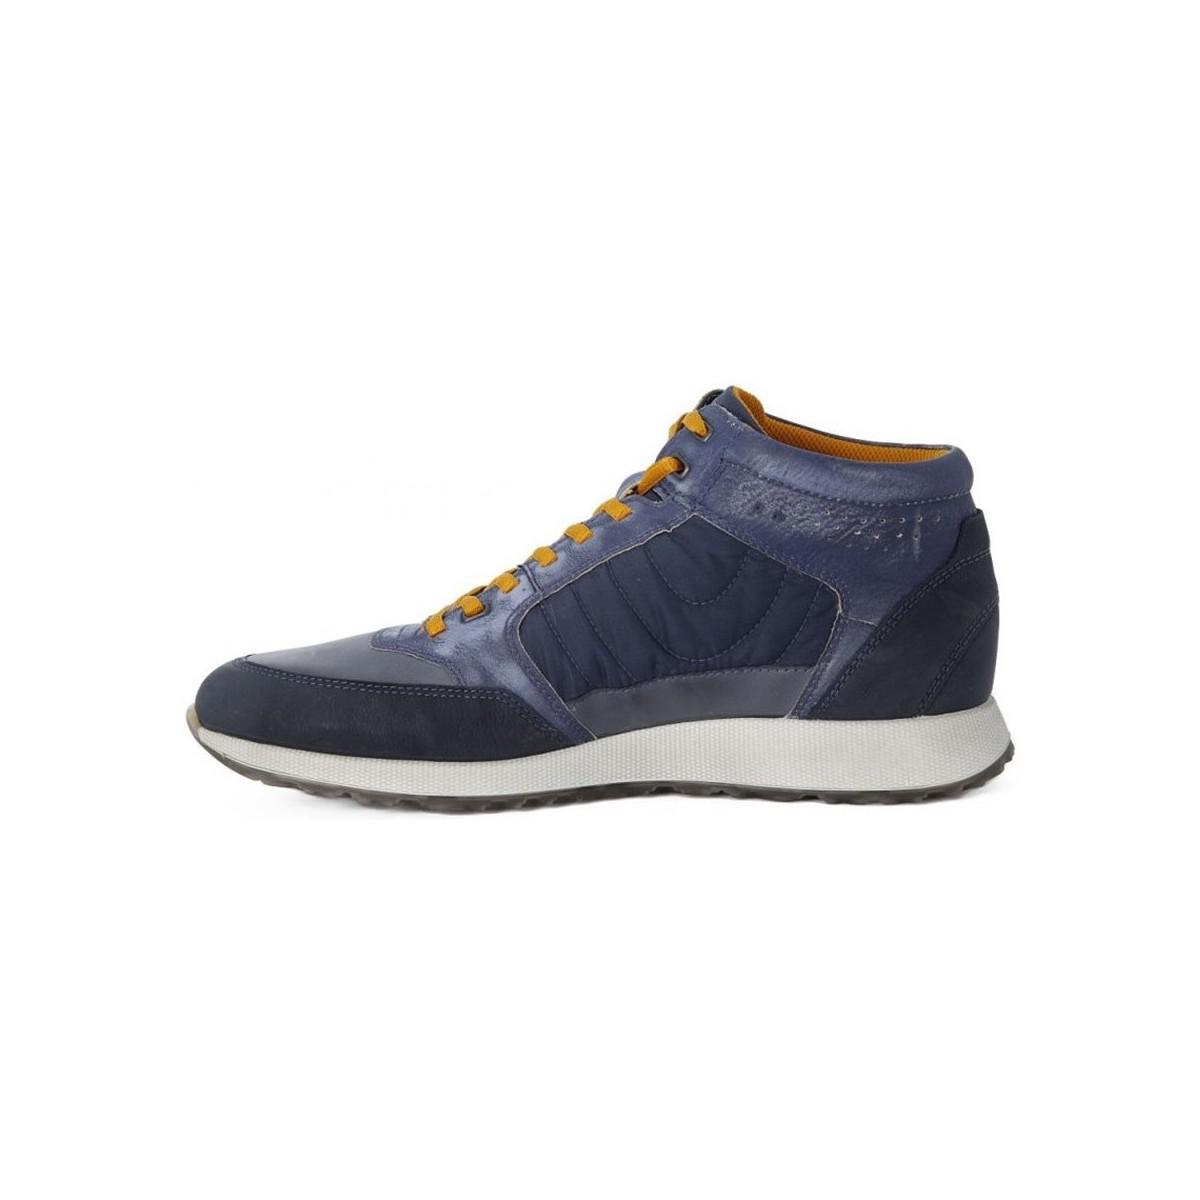 Ecco Sneak Mens Men's Shoes (high-top Trainers) In Multicolour in Blue for Men